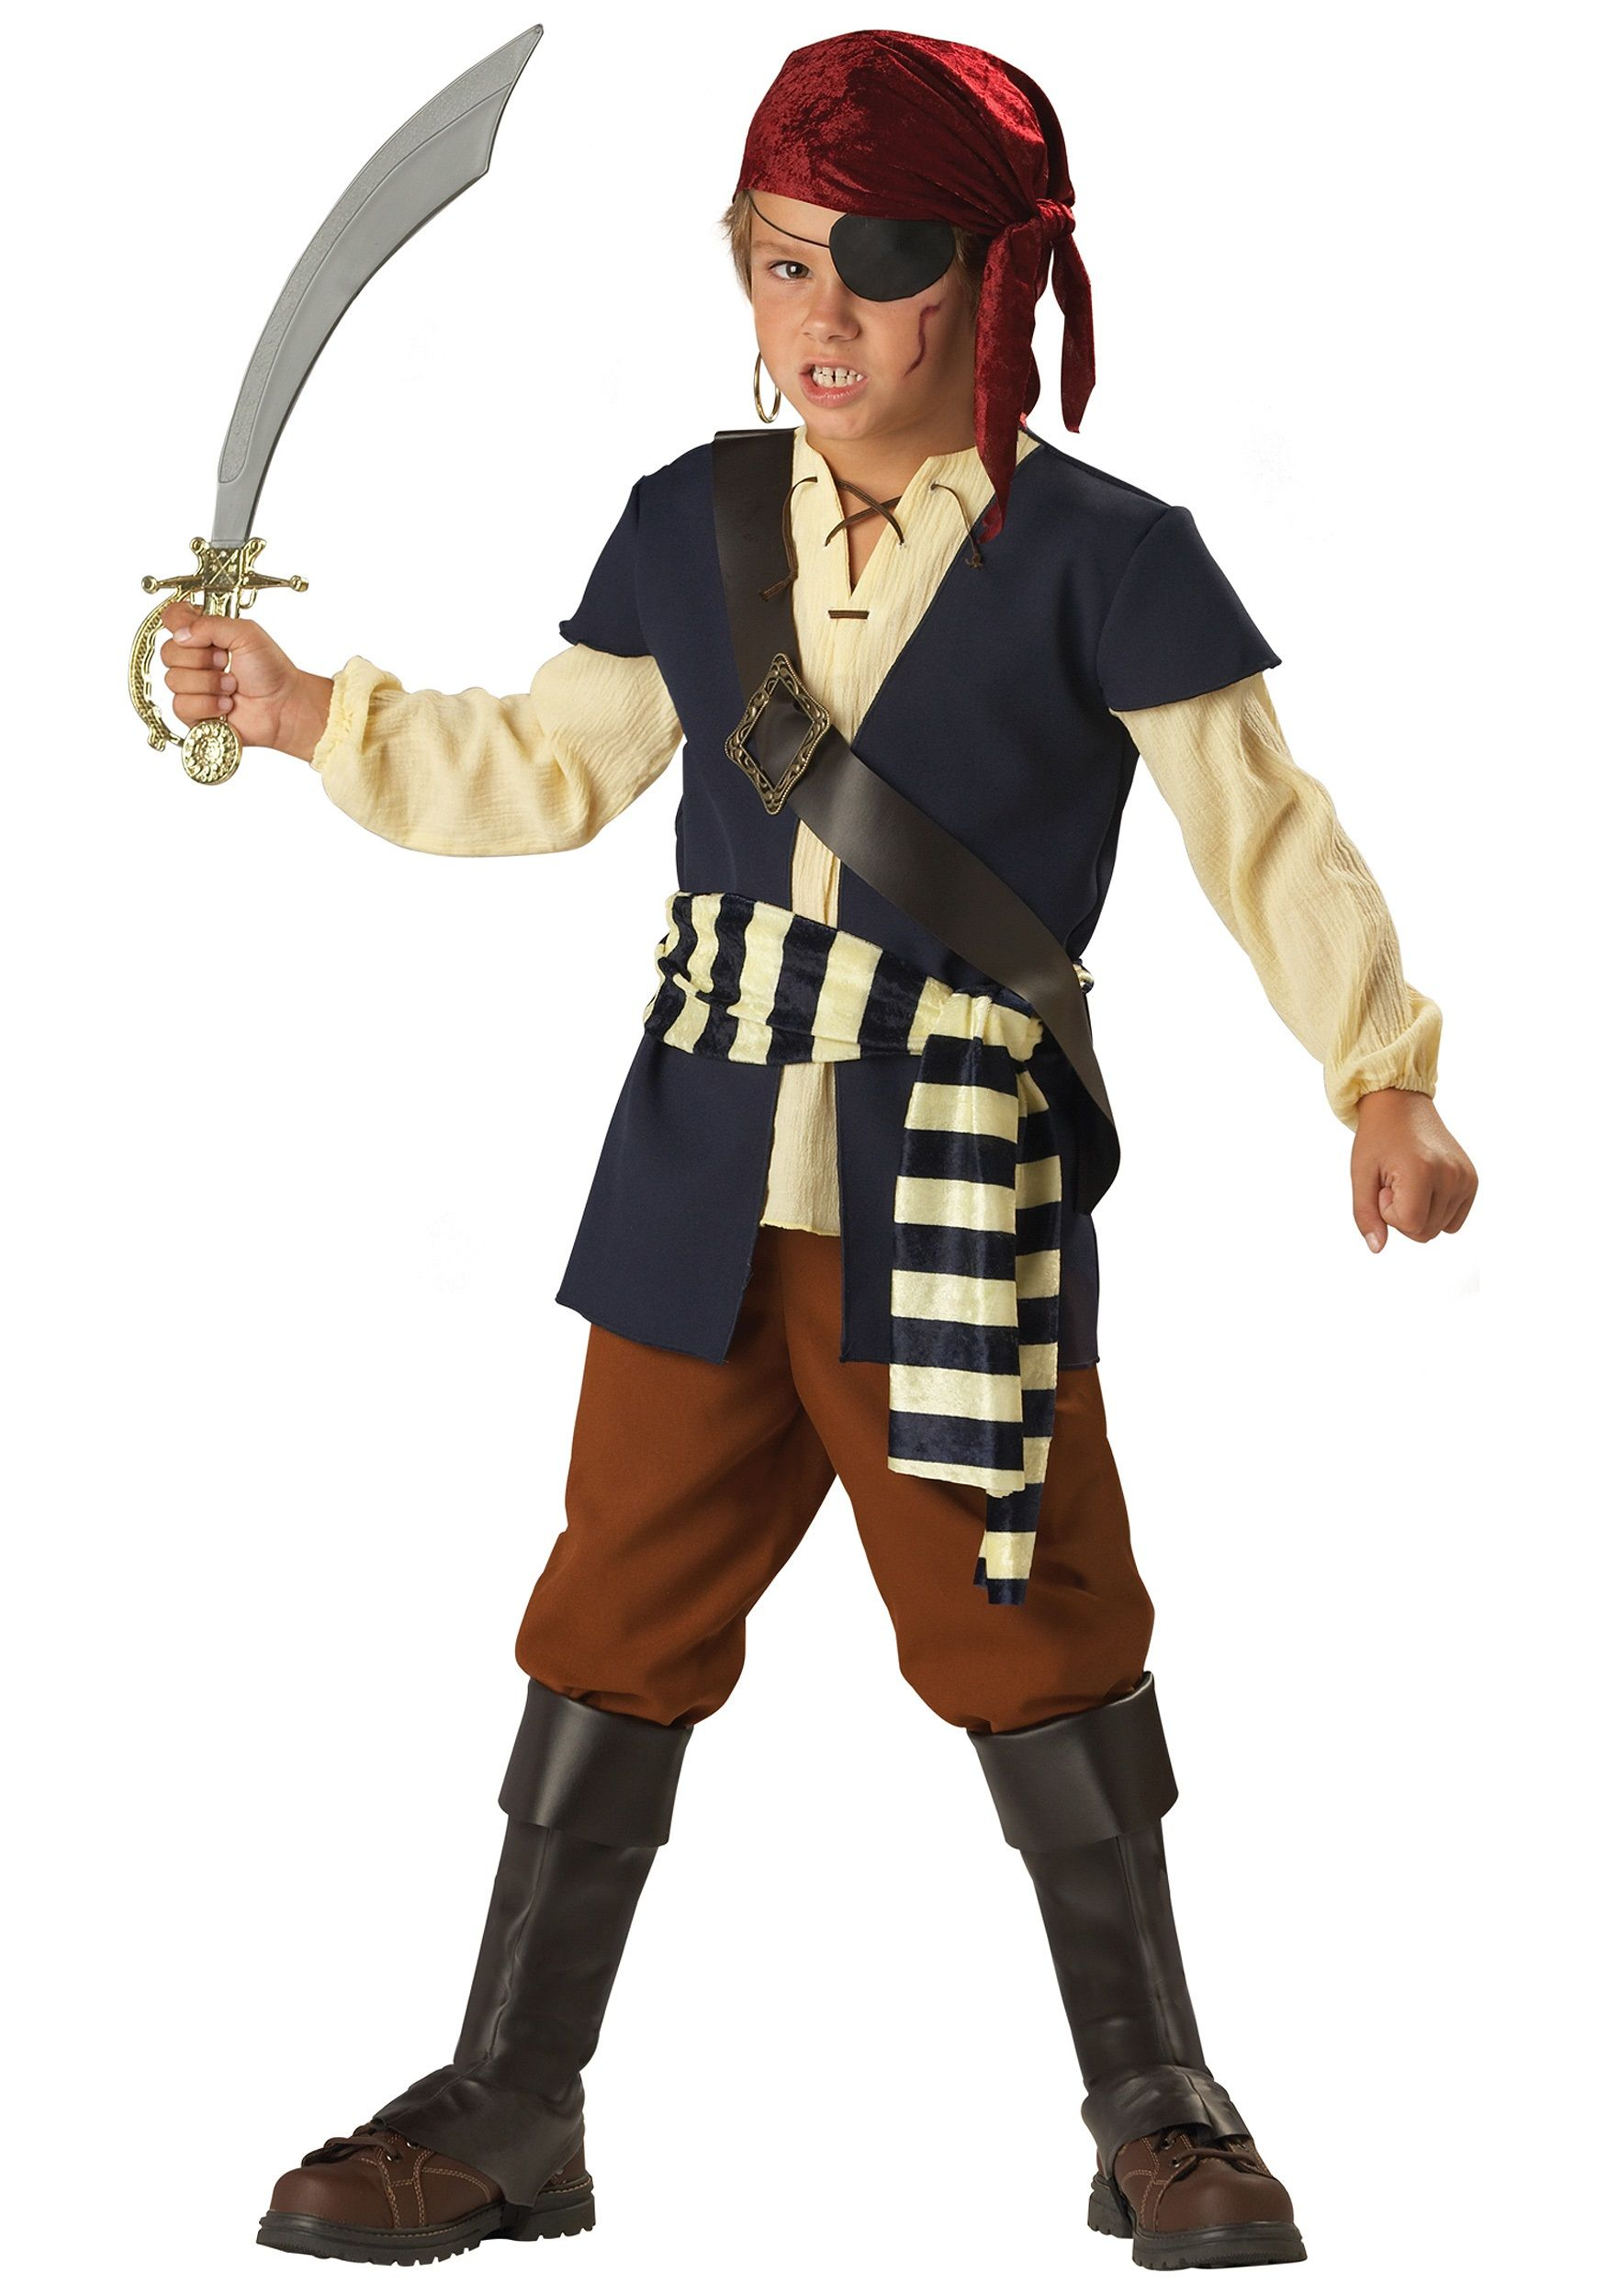 Kids Pirate Mate Costume | Costumes, Boy halloween costumes and ...